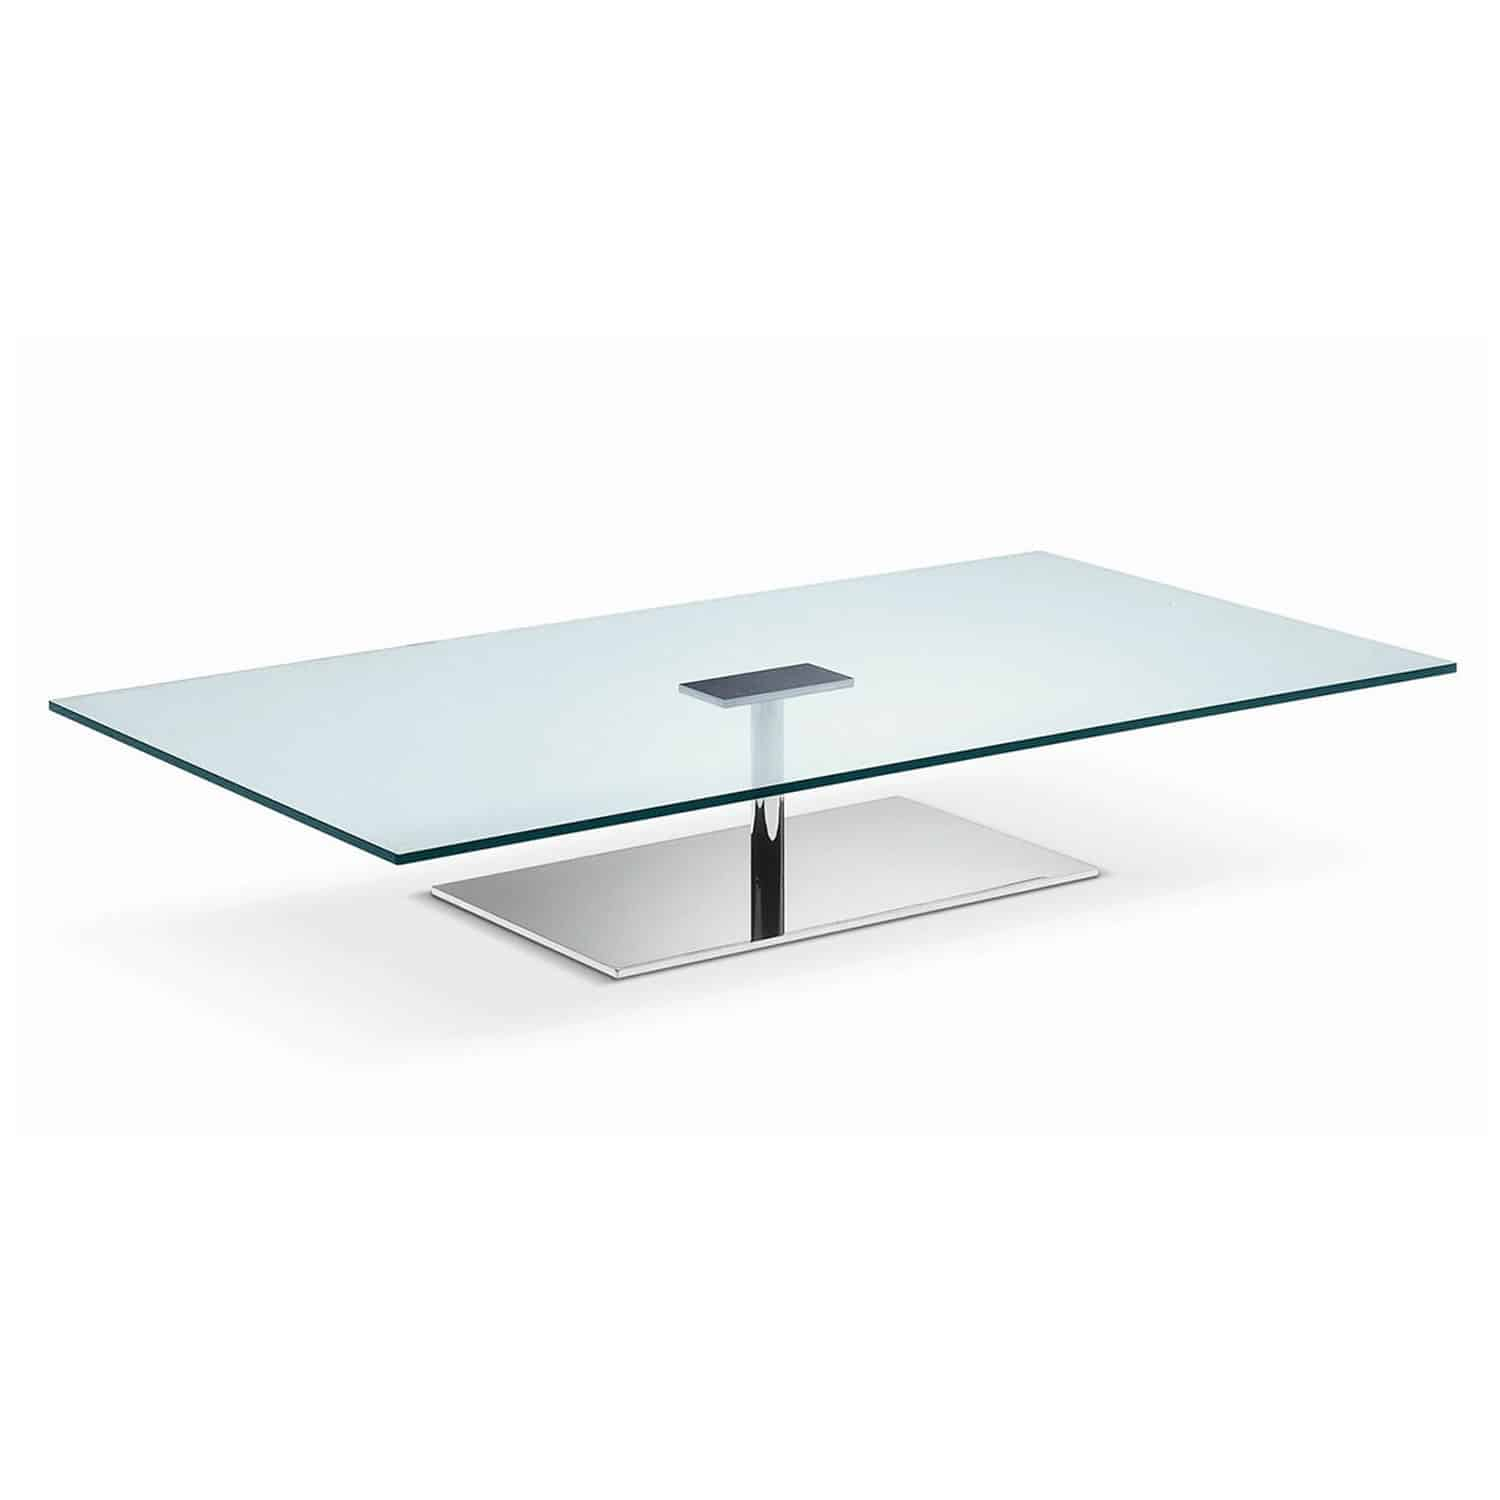 Farniente rectangular glass and metal coffee table by tonelli klarity glass furniture Steel and glass coffee table